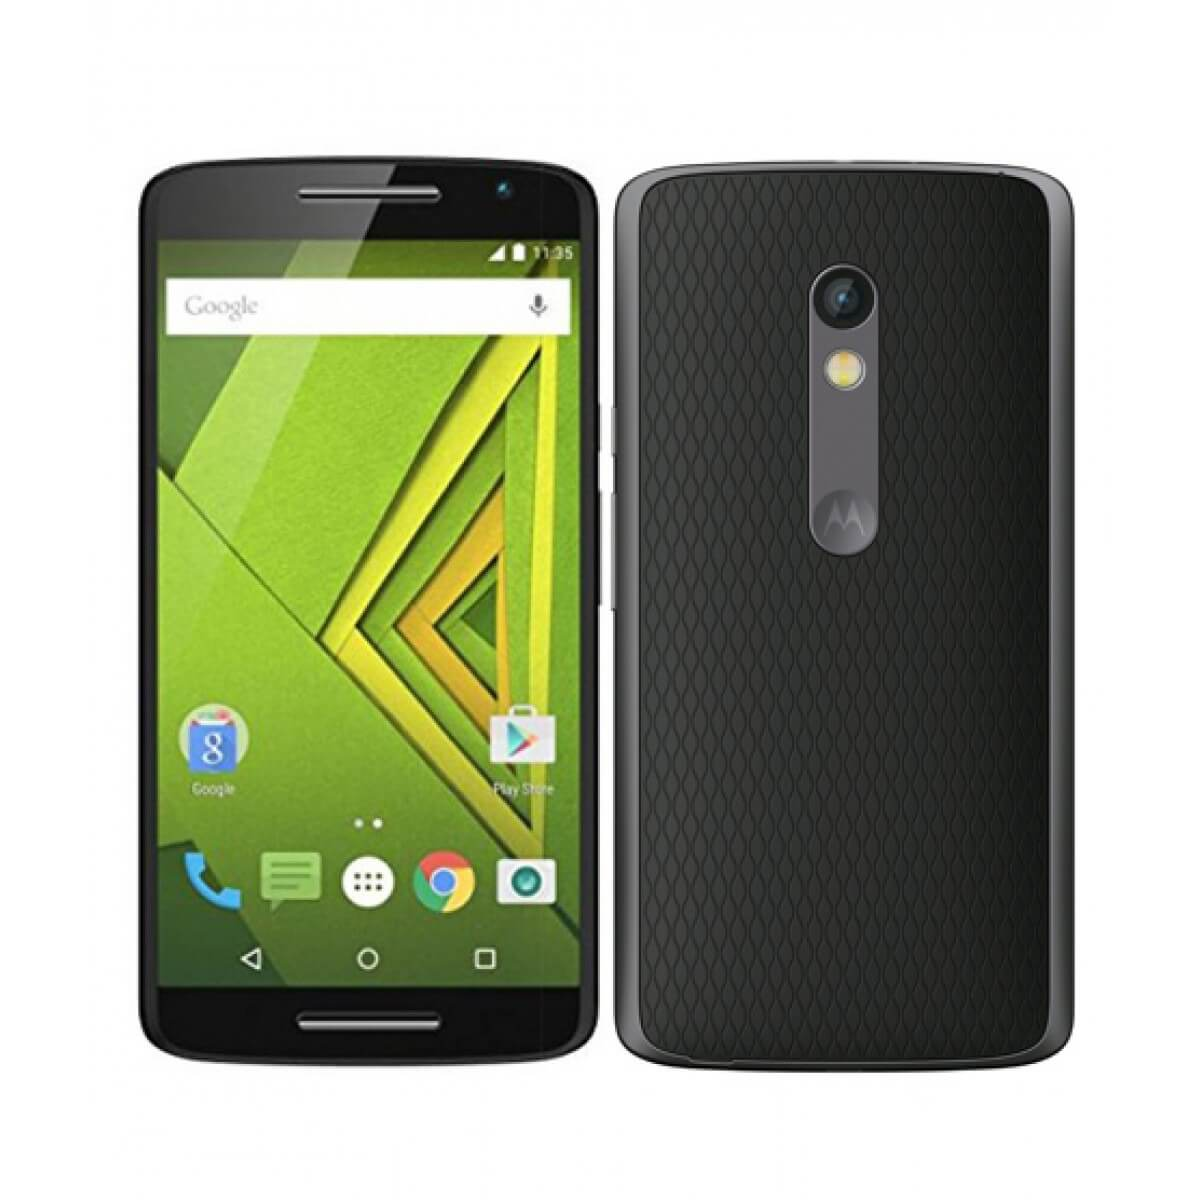 Update Moto X Play to Android 8.1 Oreo